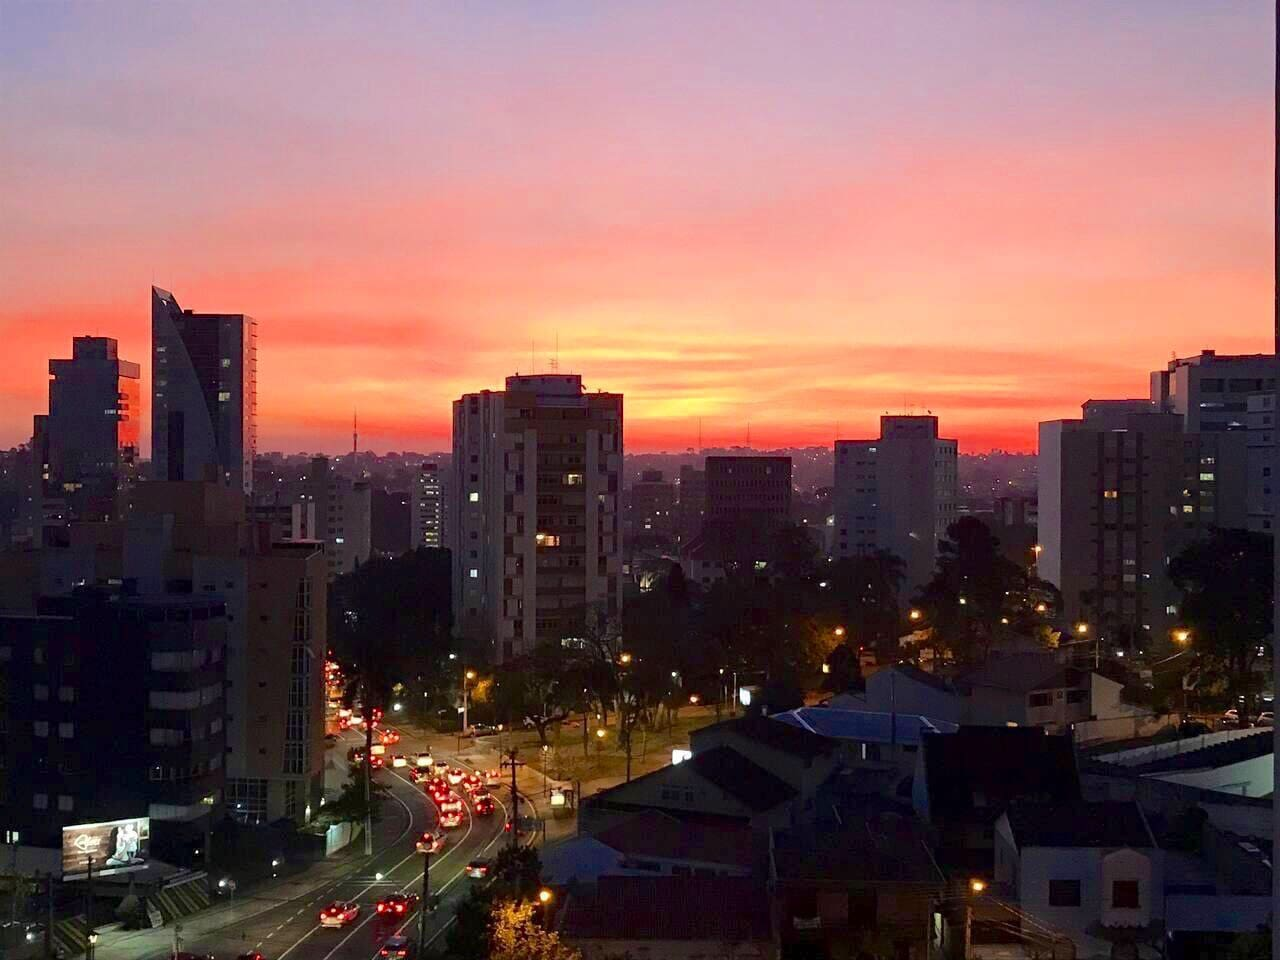 A cada por do sol, uma linda surpresa. ( vista do apartamento).